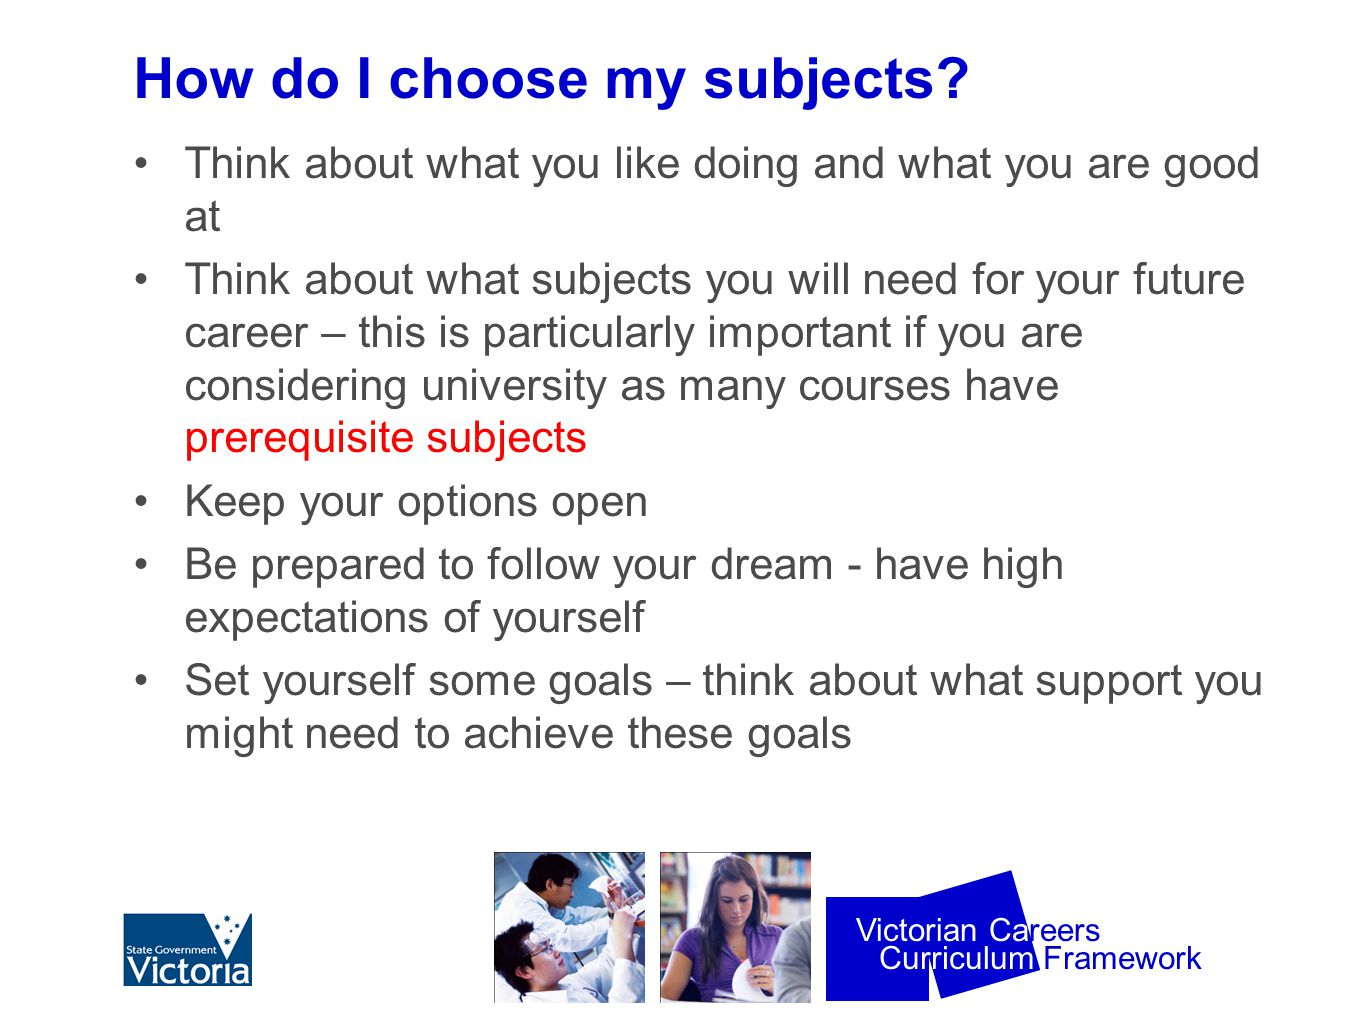 Curriculum Framework Victorian Careers How do I choose my subjects.